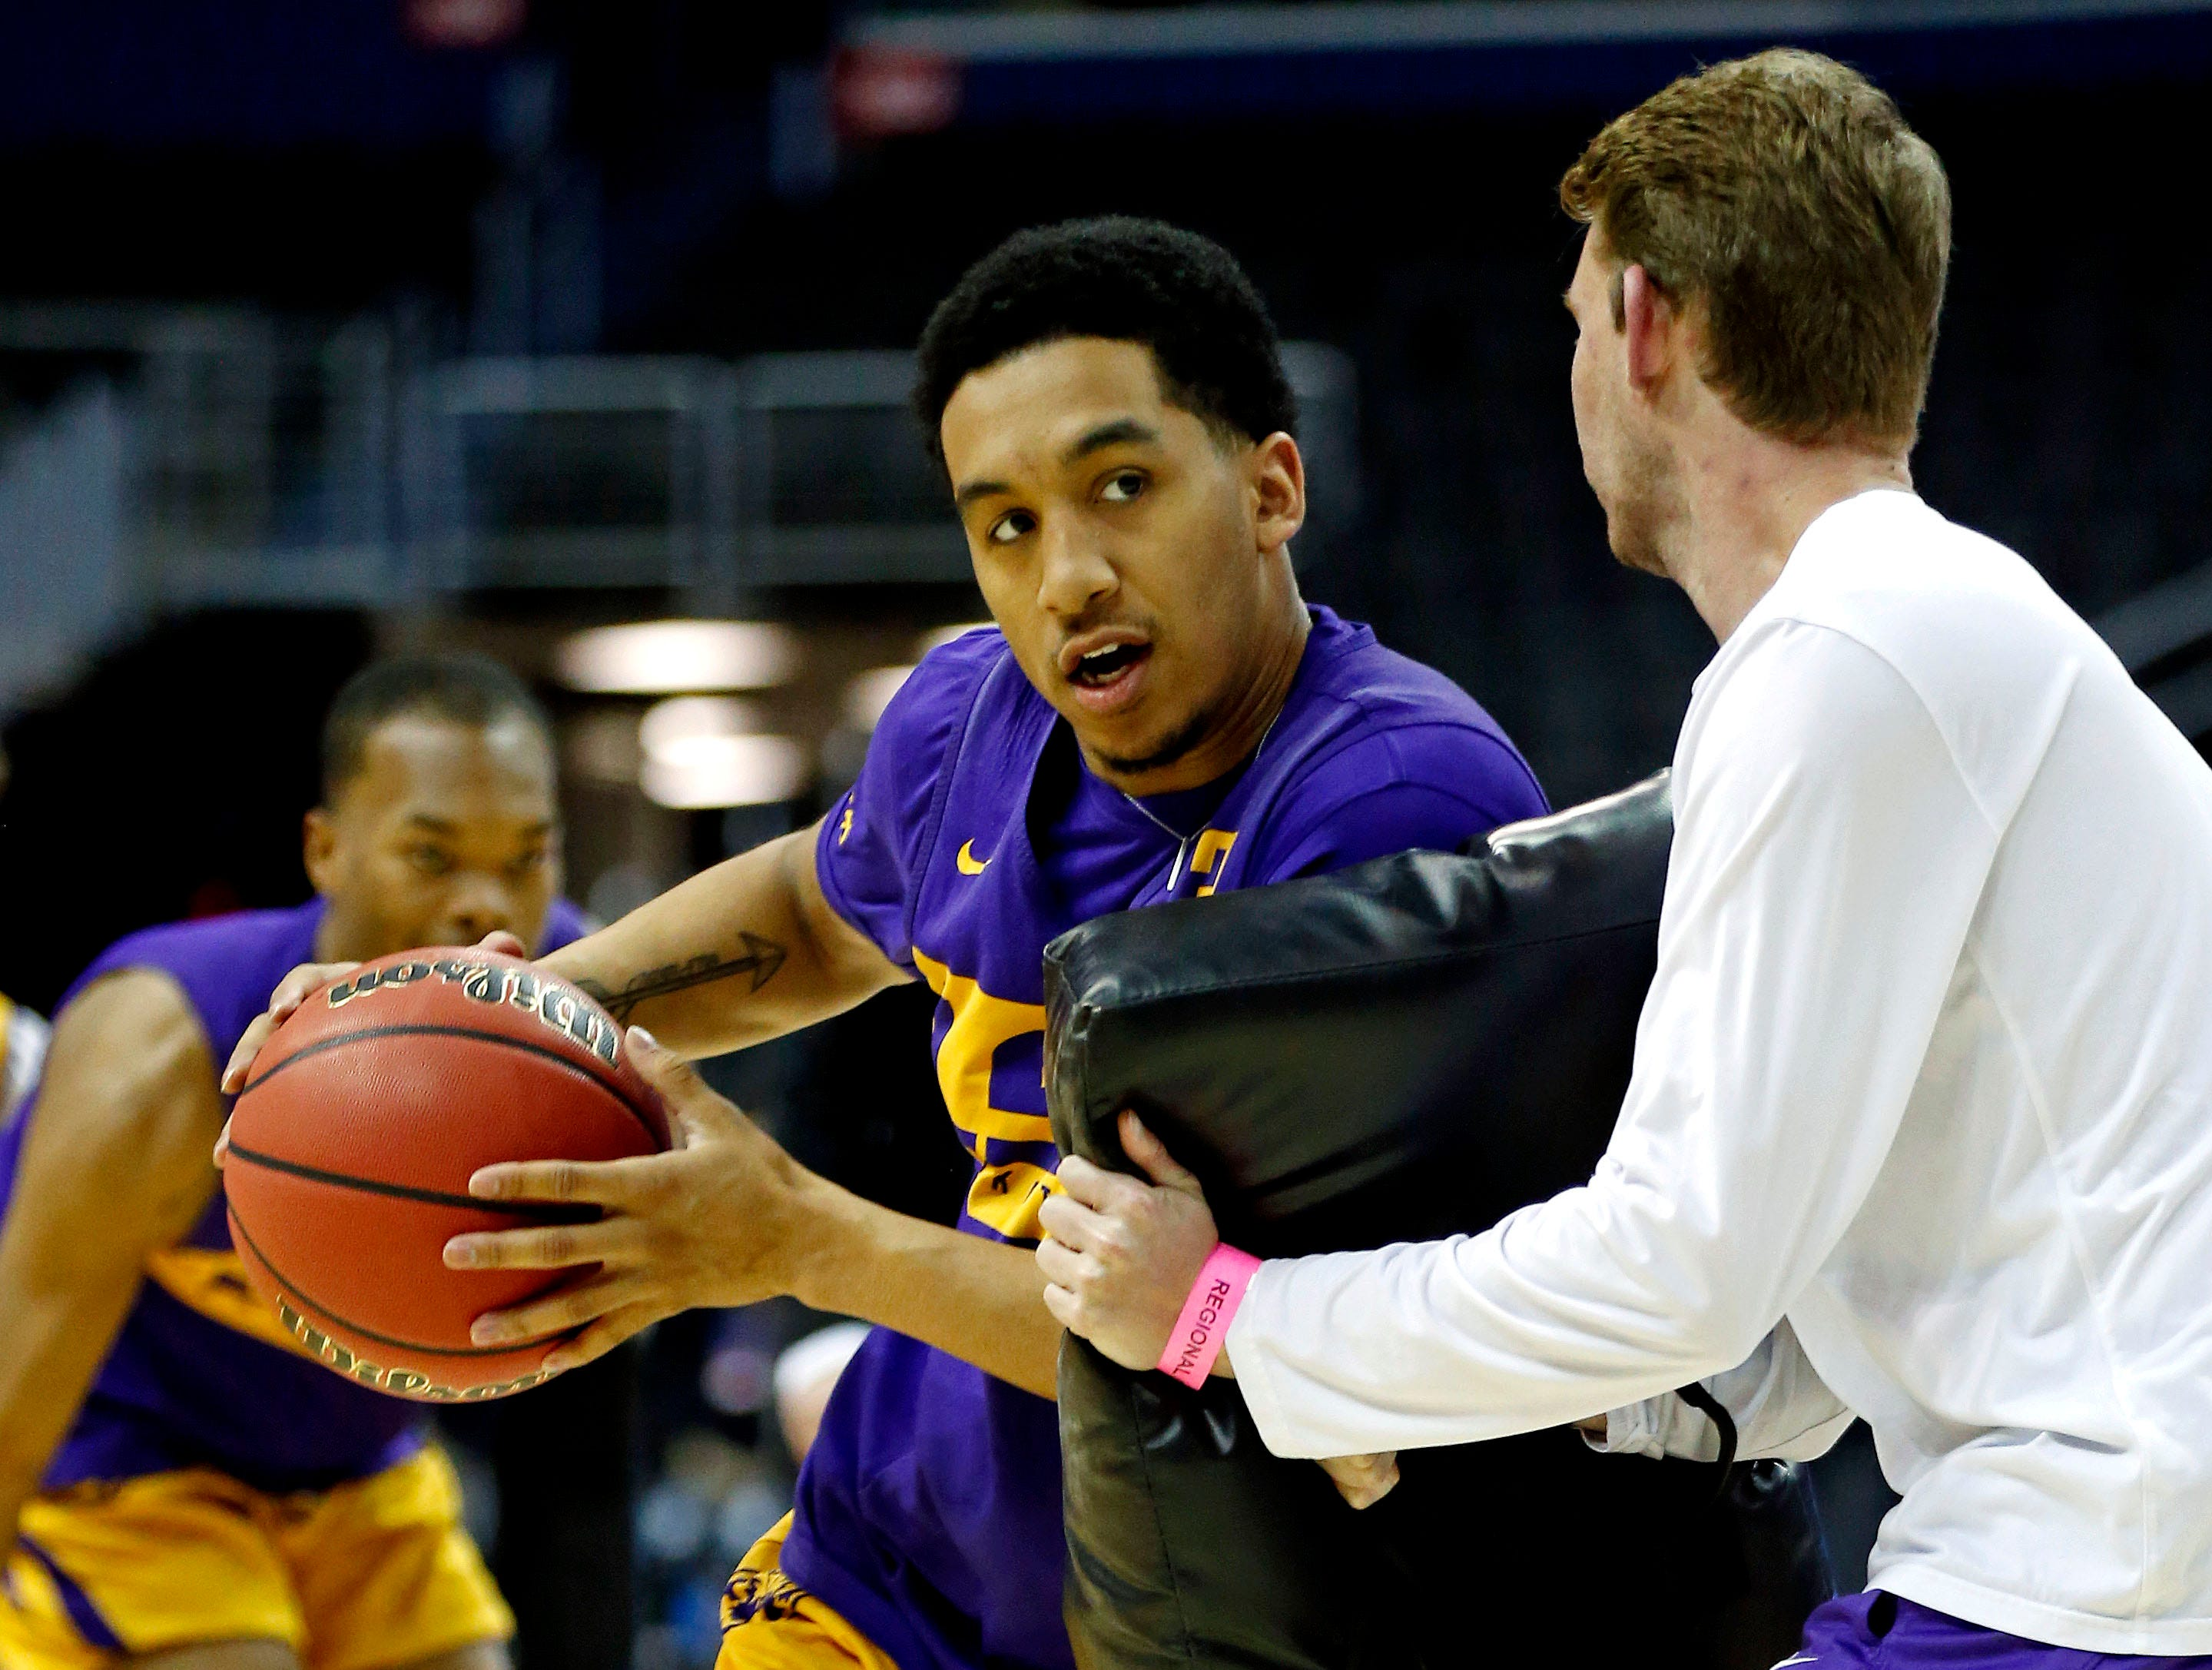 Mar 28, 2019; Washington, DC, USA; LSU Tigers guard Tremont Waters (3) handles the ball during practice for the east regional of the 2019 NCAA Tournament at Capital One Arena. Mandatory Credit: Amber Searls-USA TODAY Sports